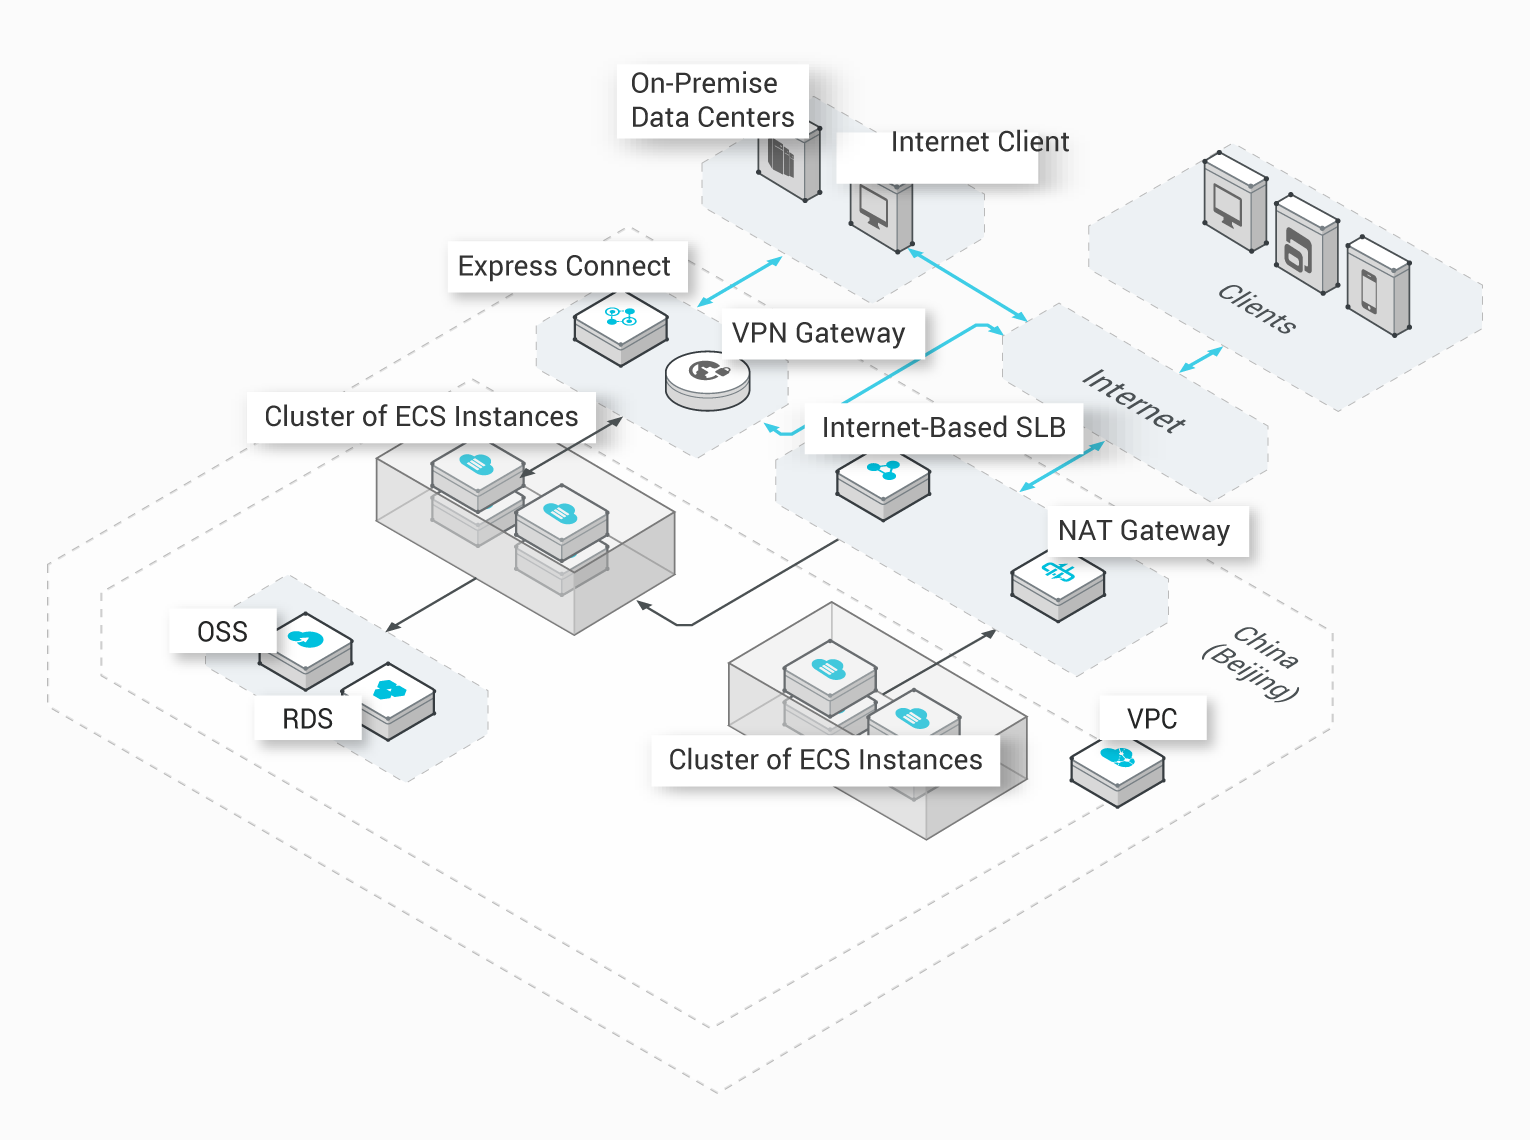 VPN Gateway: Connection between a VPC and Your Data Center